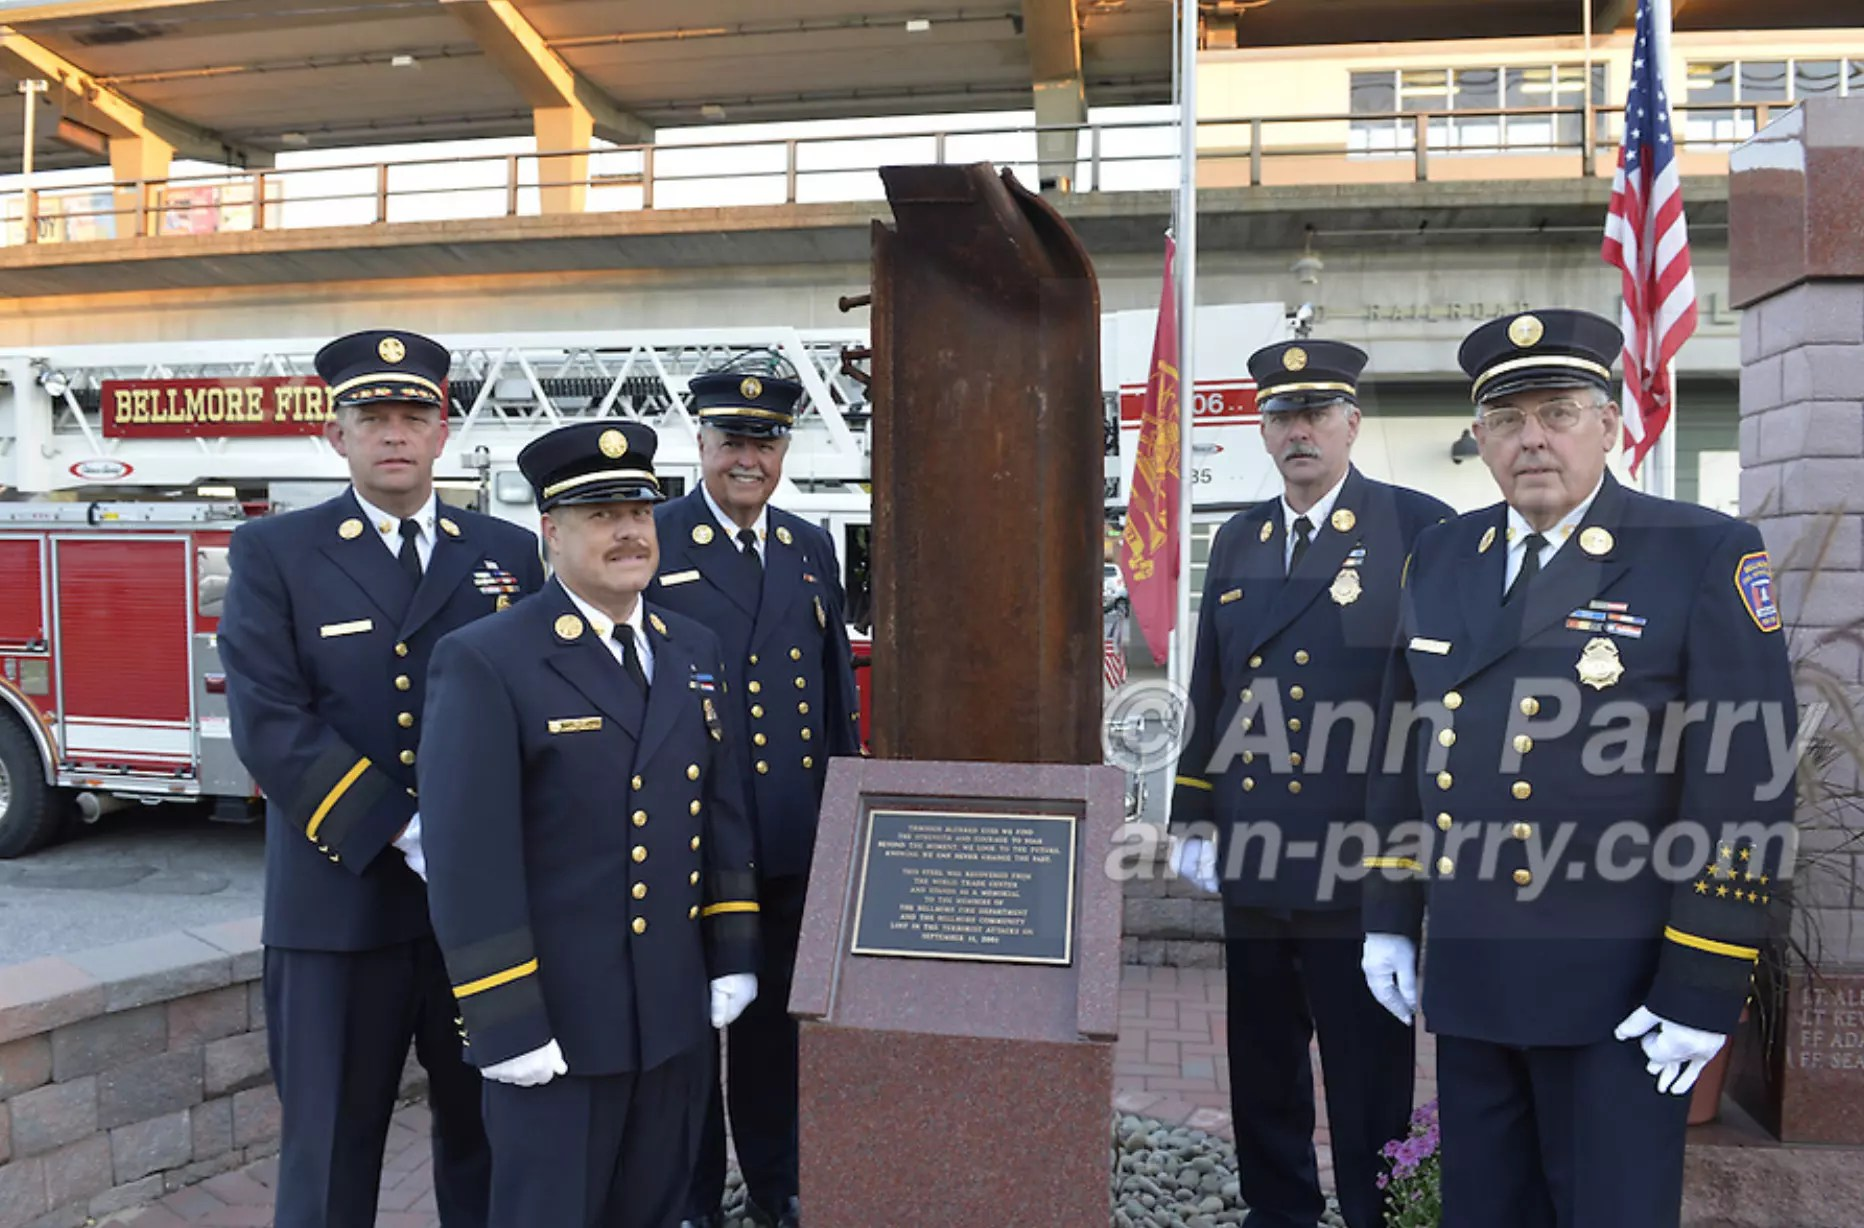 Bellmore, NY, USA. 11th Sept. 2015. L-R, Bellmore Fire Dept. Chief DANIEL HOLL, Pastor and Chaplain JAMES BARNUM, 1st Deputy VINCENT MONTERA, 2nd Deputy TOM STOERGEN, and Chaplain DENNIS RICH stand next to a monument that's a piece of structural steel from the Twin Towers, during the Bellmore Memorial Ceremony for 3 Bellmore volunteer firefighters and 7 residents who died due to 9/11 NYC terrorist attacks. Elevated platform of Bellmore LIRR Station is in background.